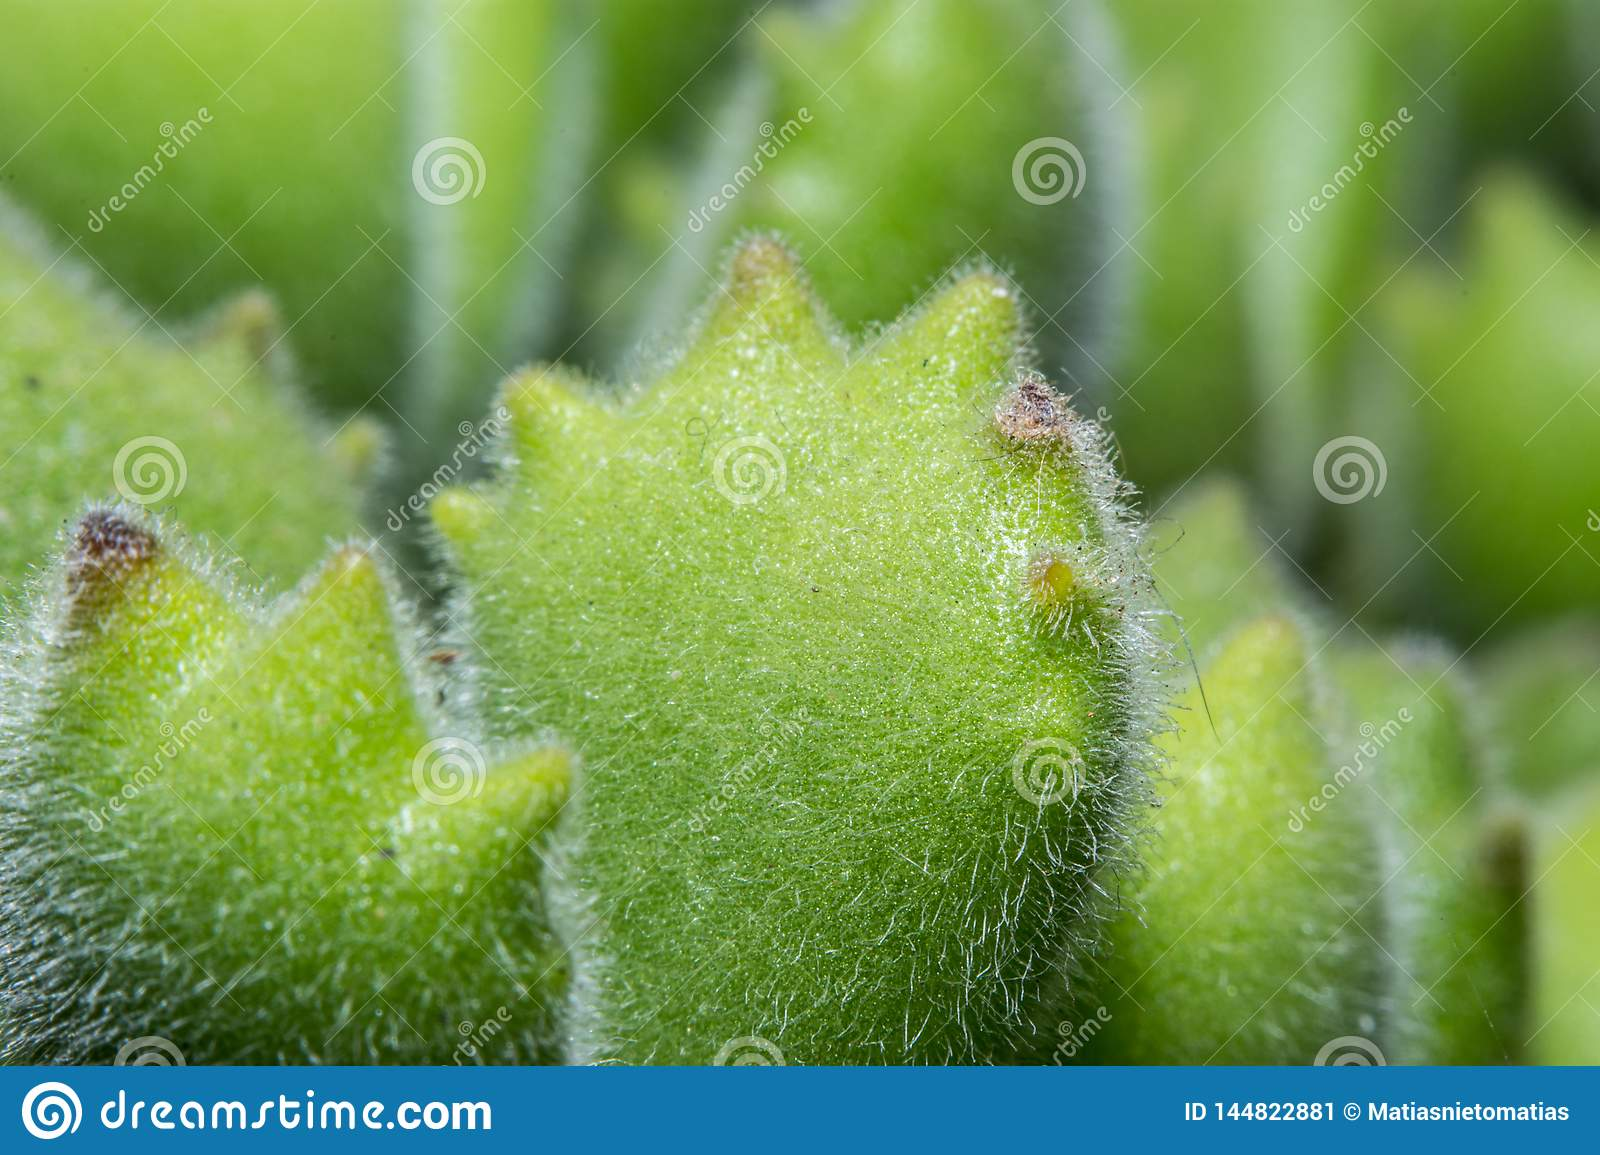 Macro shot of a tiny plant called Bear Feet